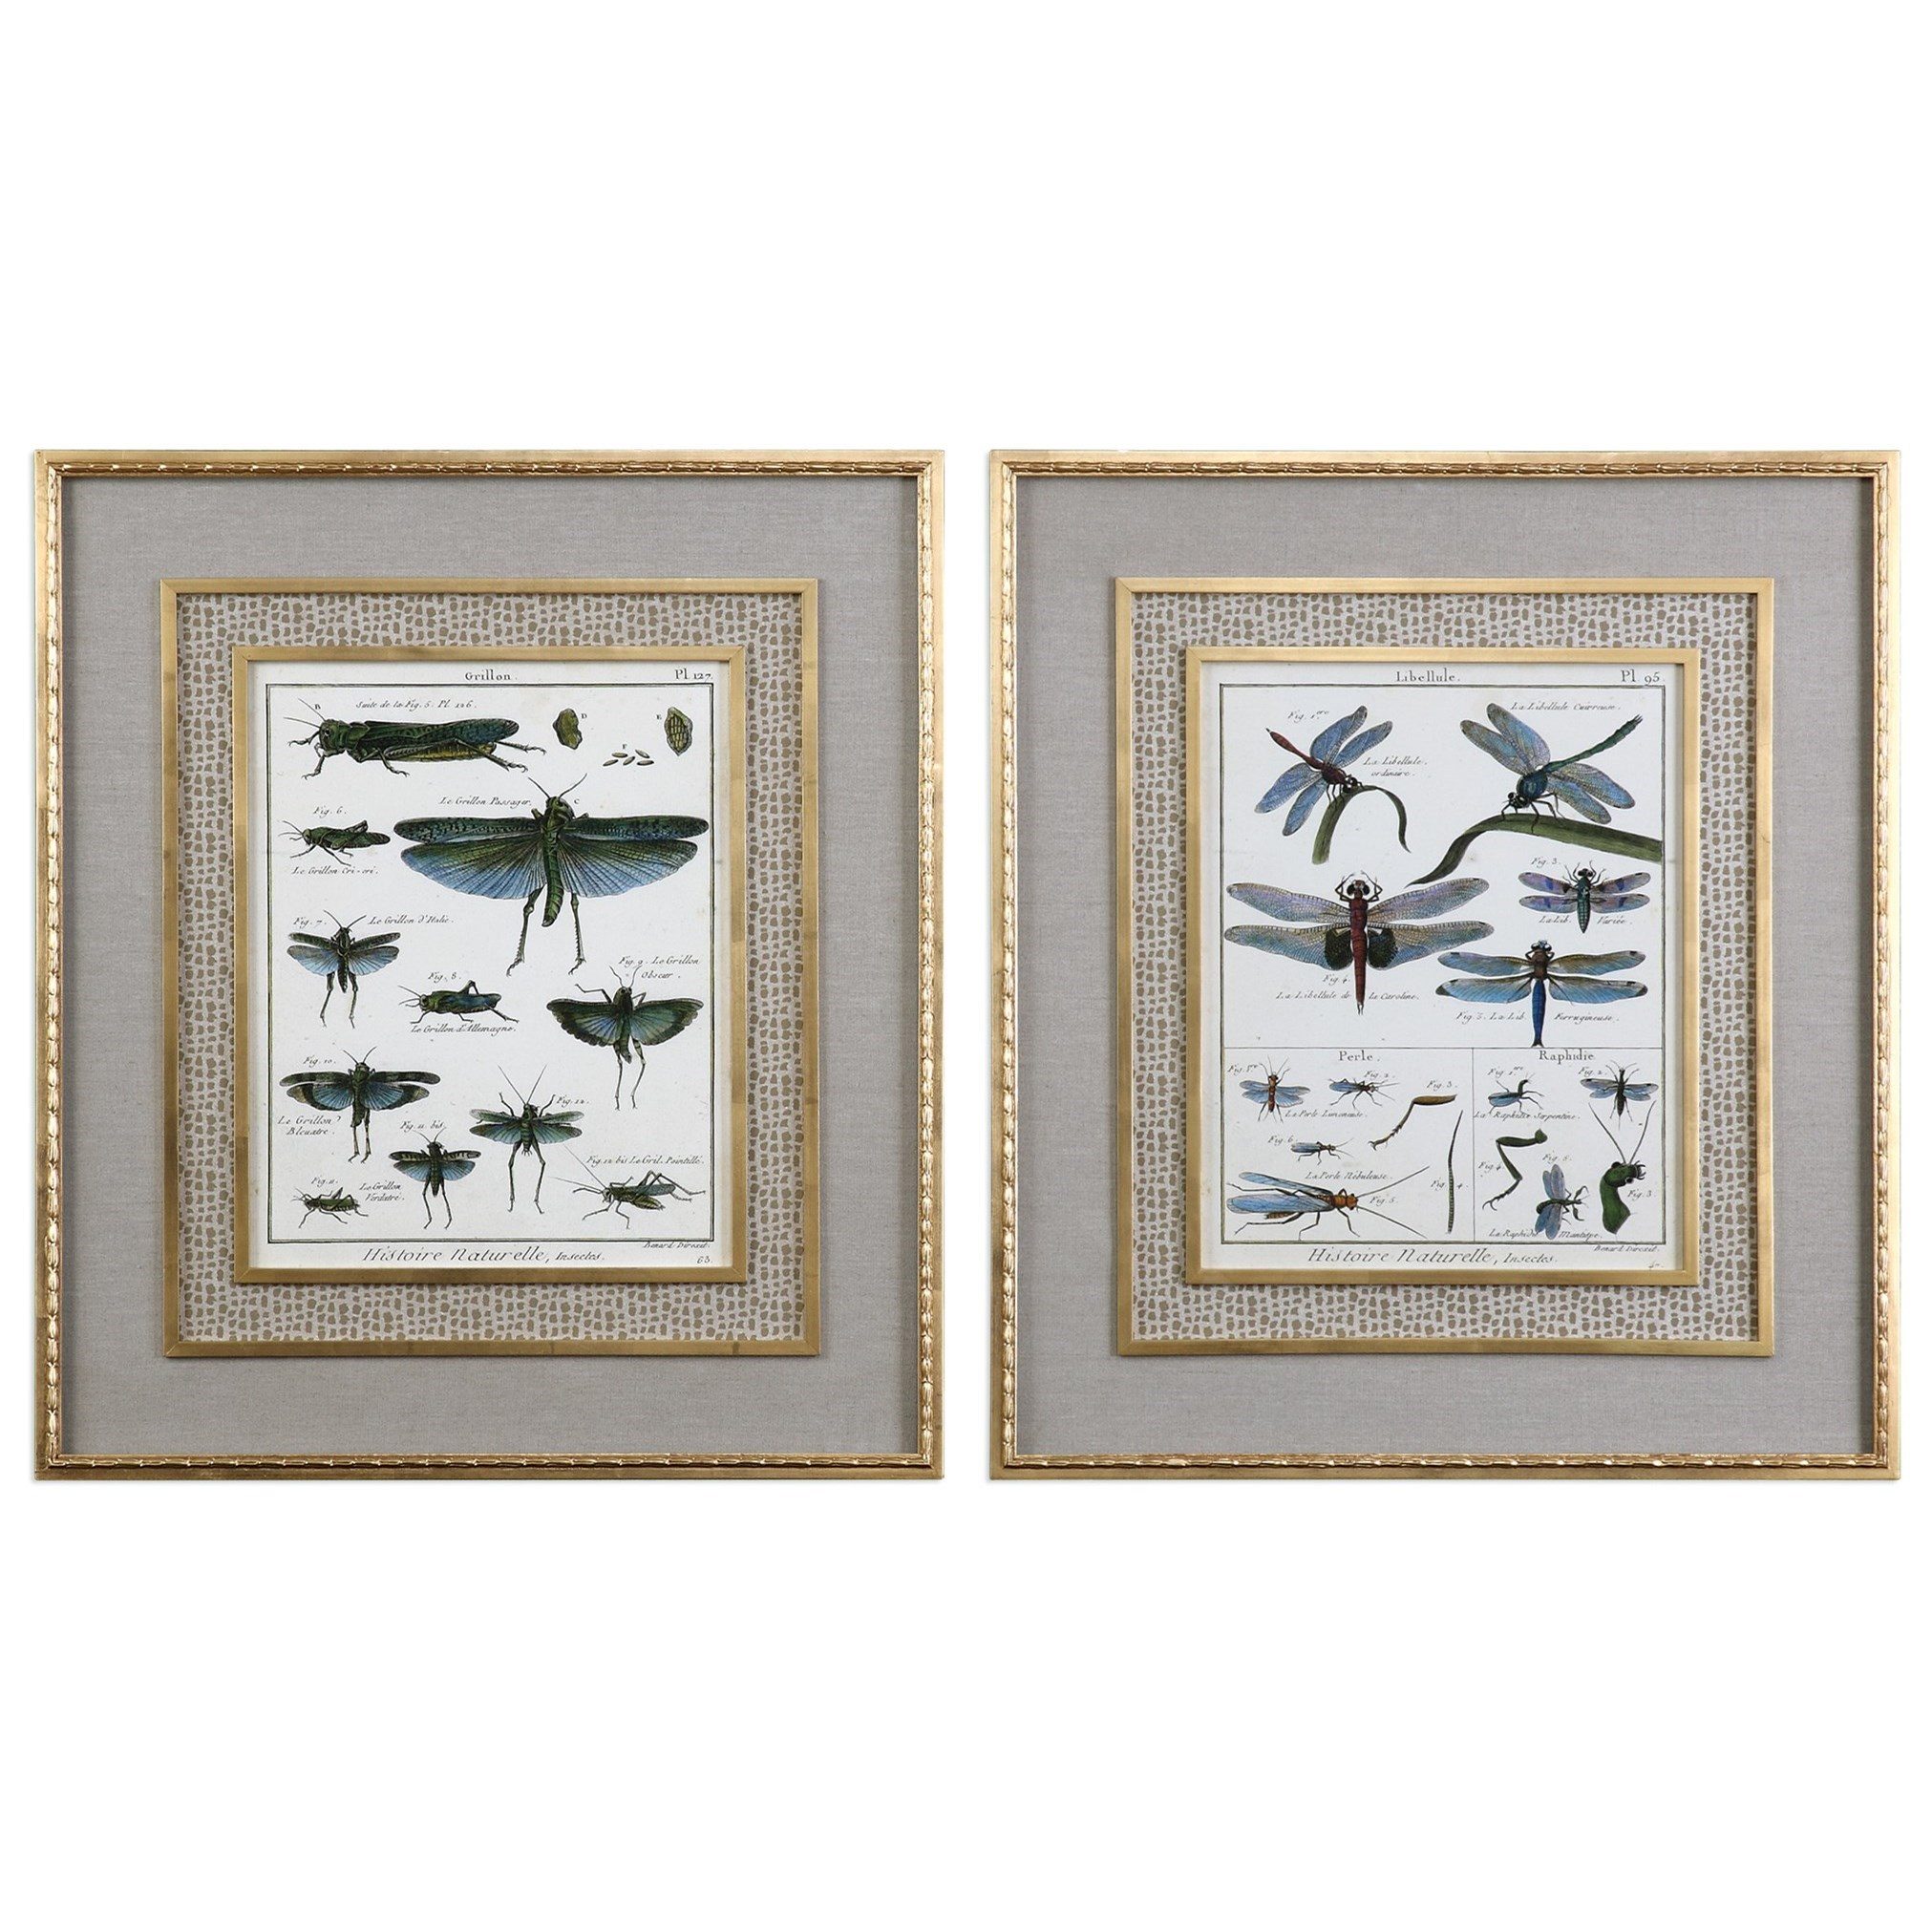 Uttermost Art Naturelle Insects (Set of 2) - Item Number: 41564